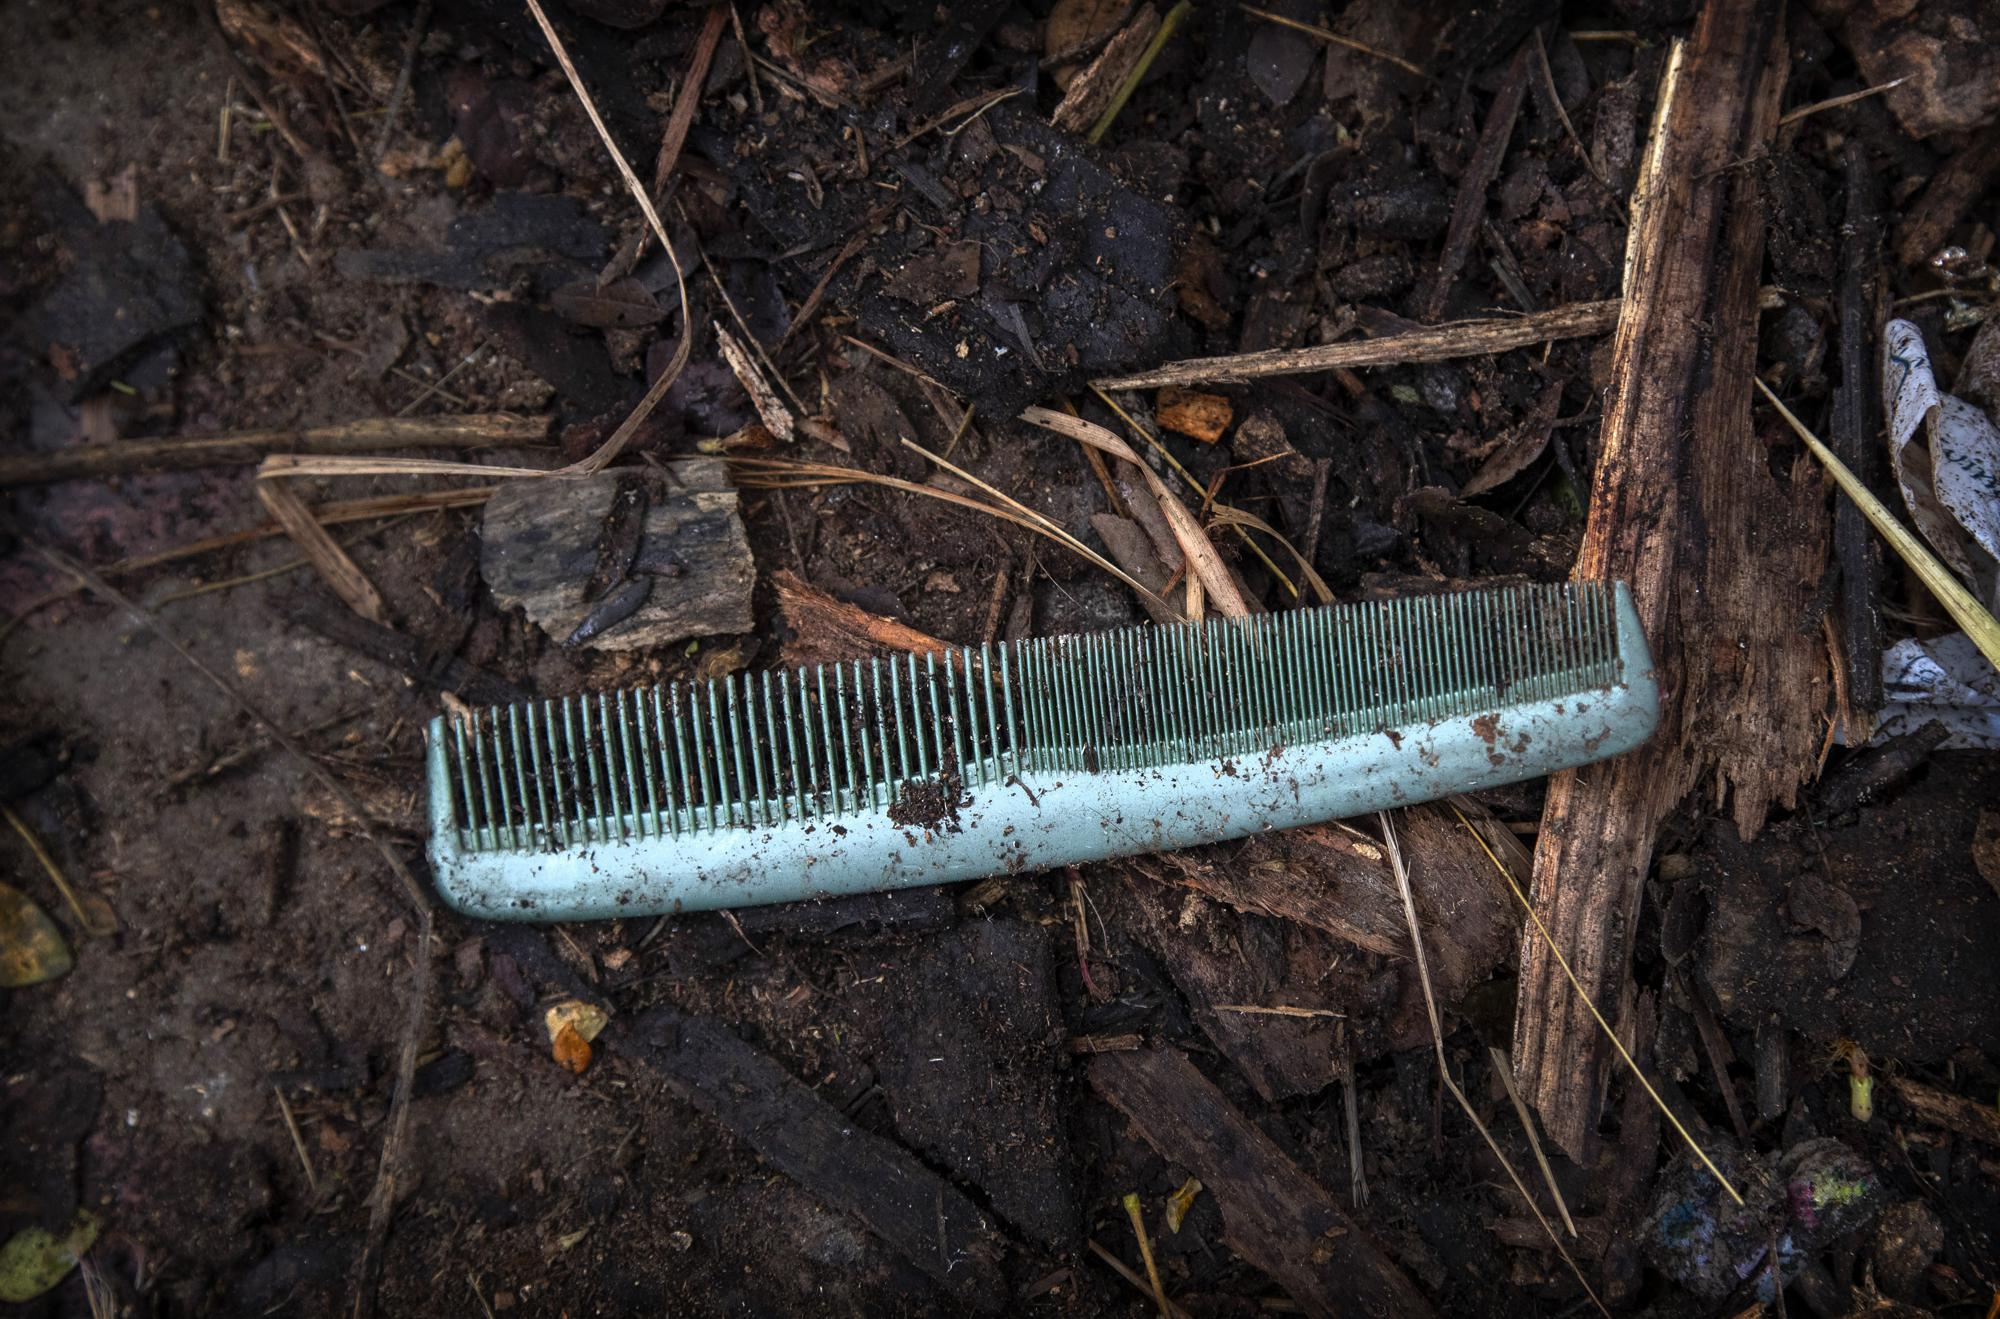 A comb of a deceased COVID-19 victim lies in a cremation ground in Gauhati, India, Friday, July 2, 2021. The personal belongings of cremated COVID-19 victims lie strewn around the grounds of the Ulubari cremation ground in Gauhati, the biggest city in India's remote northeast. It's a fundamental change from the rites and traditions that surround death in the Hindu religion. And, perhaps, also reflects the grim fears grieving people shaken by the deaths of their loved ones — have of the virus in India, where more than 405,000 people have died.